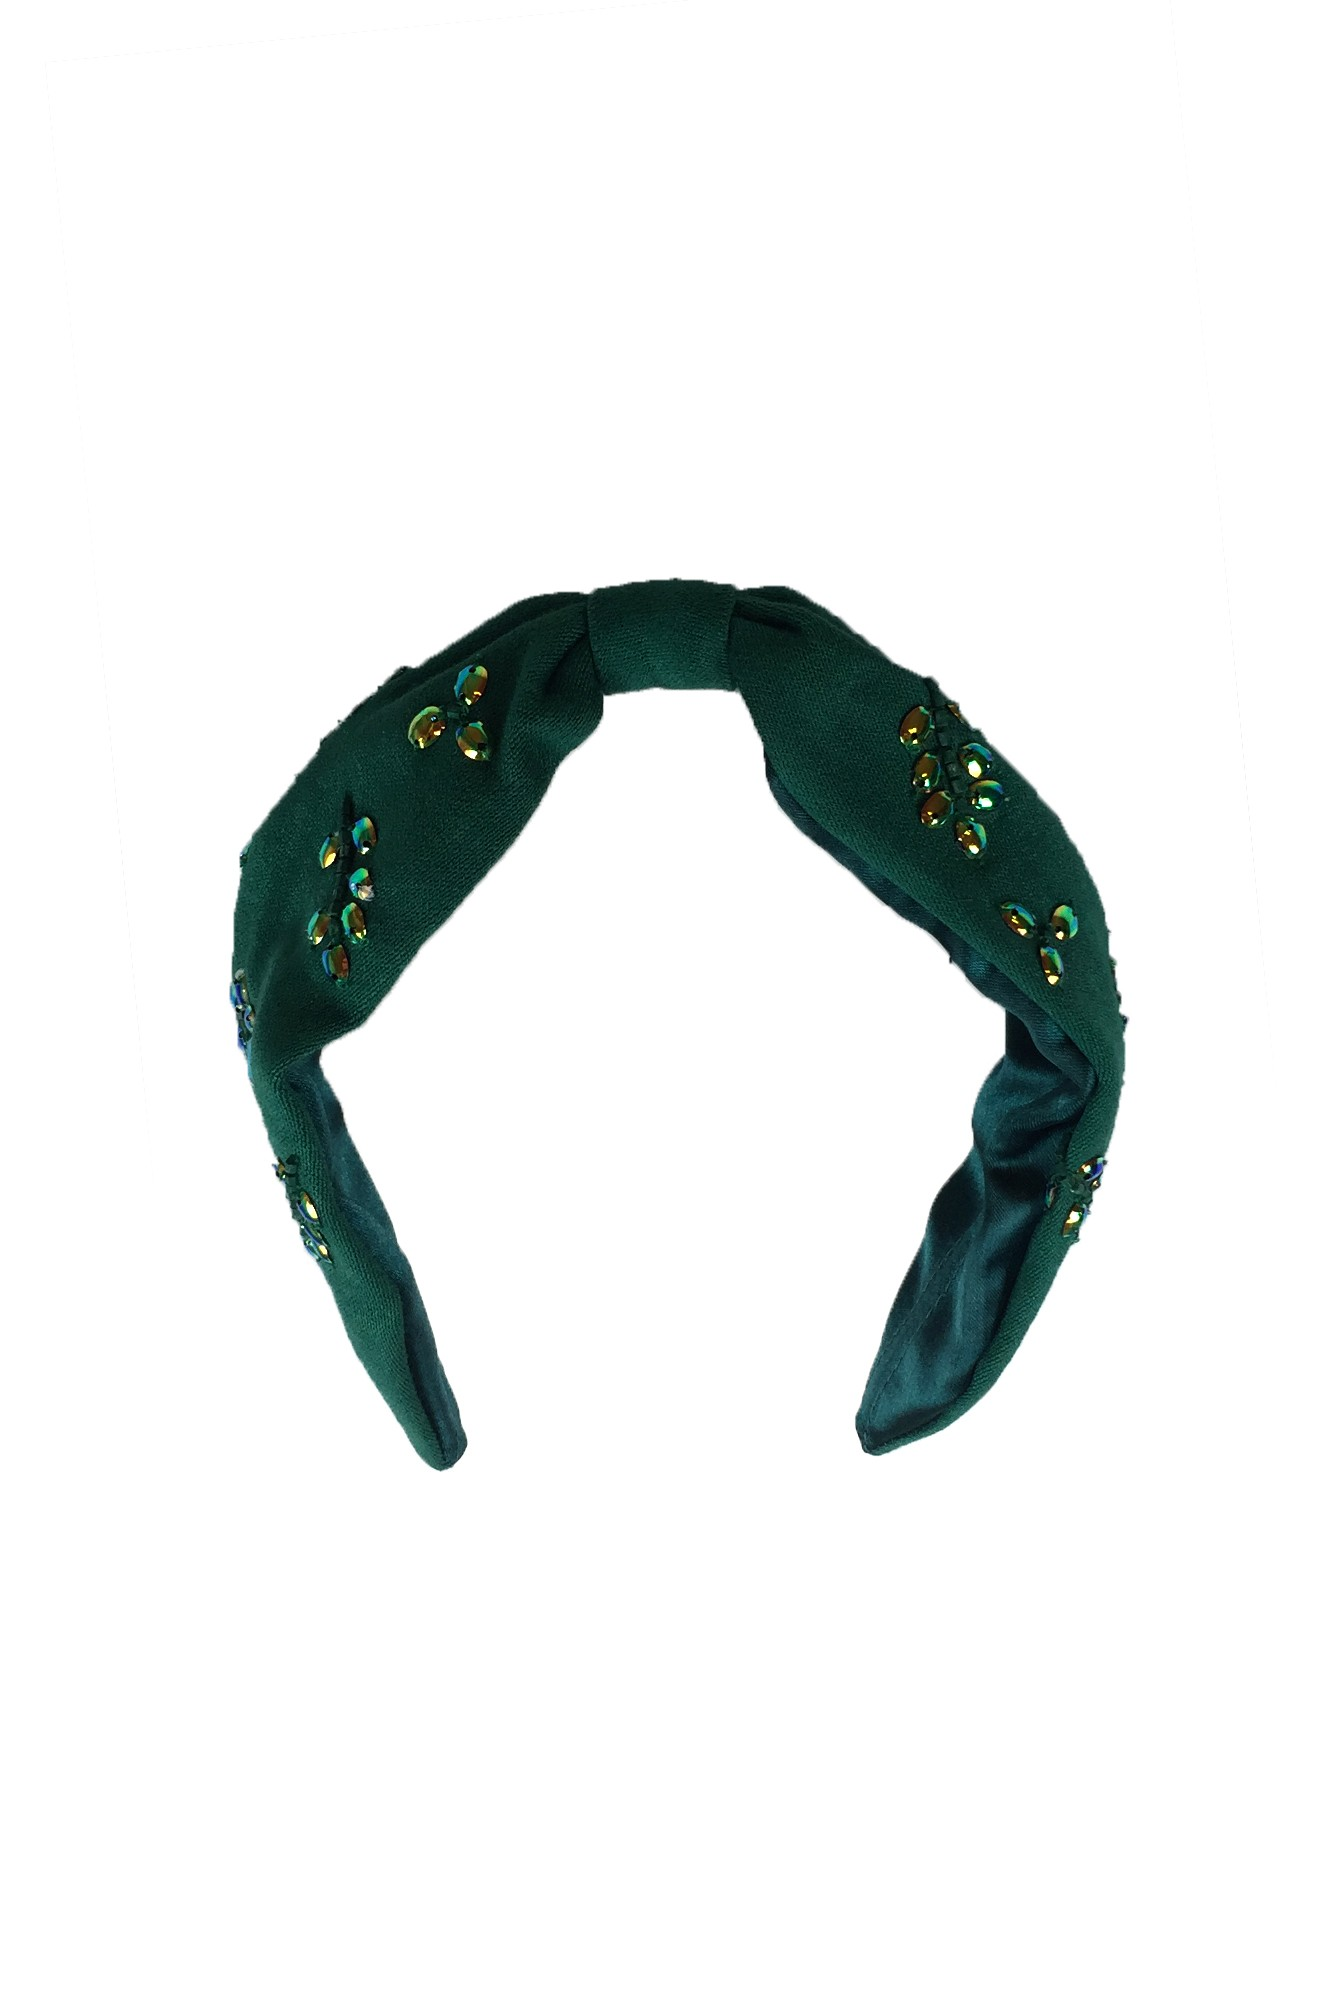 CARON GREEN HEADBAND